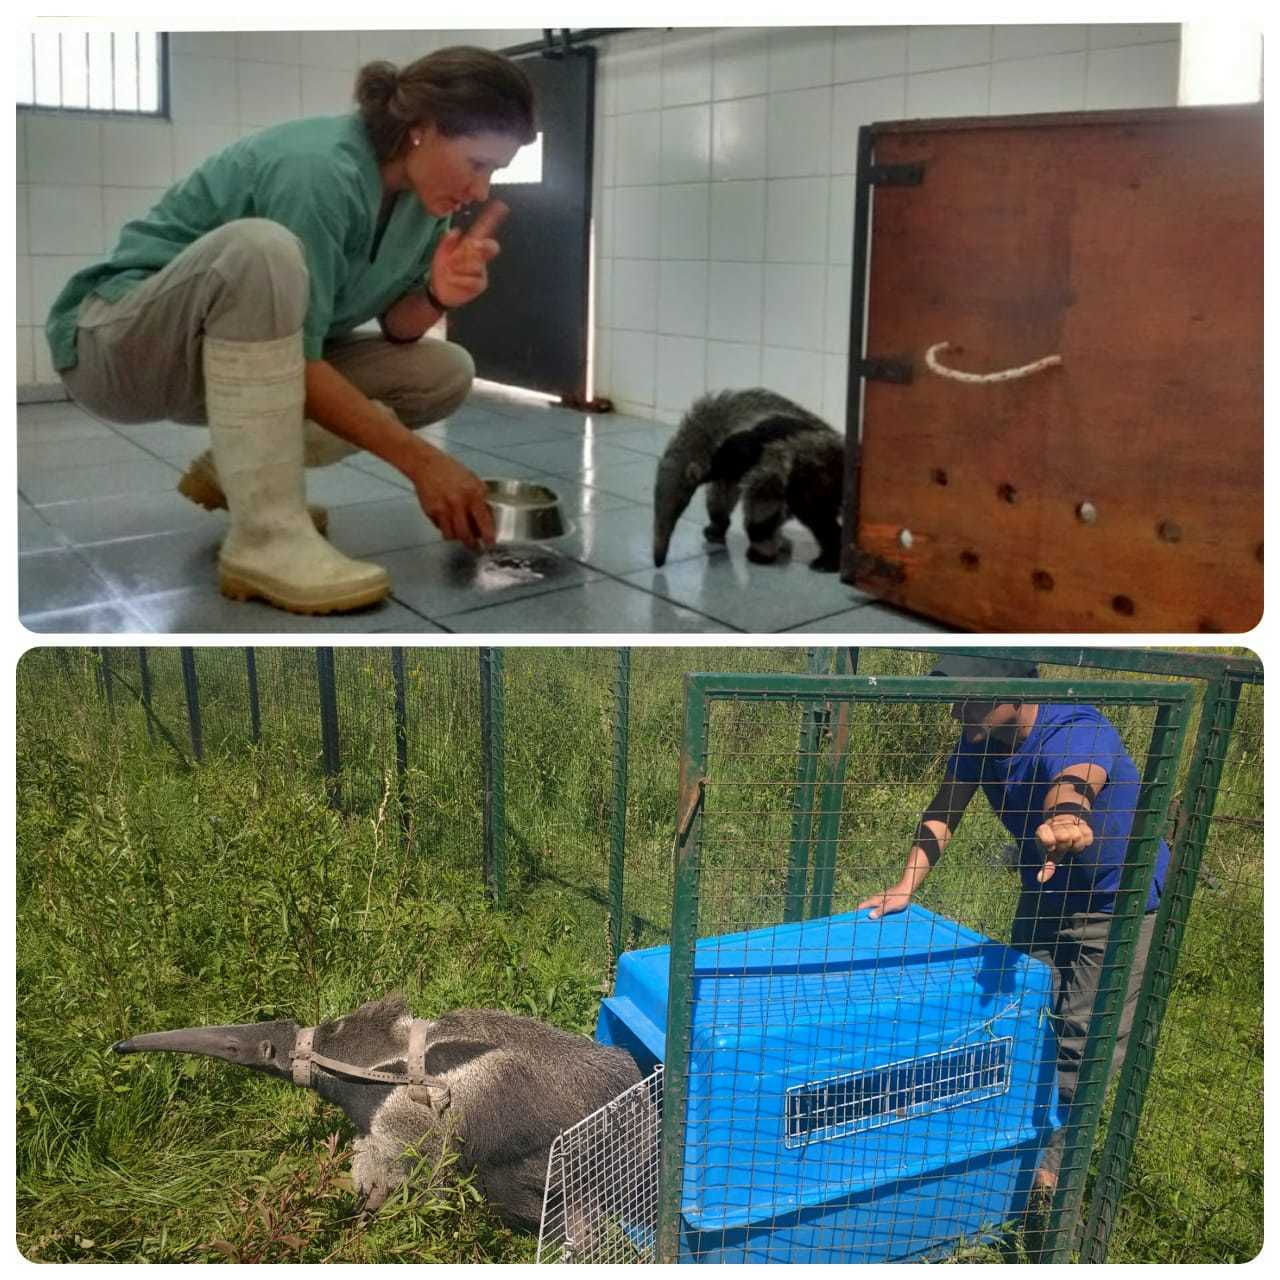 The before (in the quarantine) and after (in the pre-release pen) of Arturo.